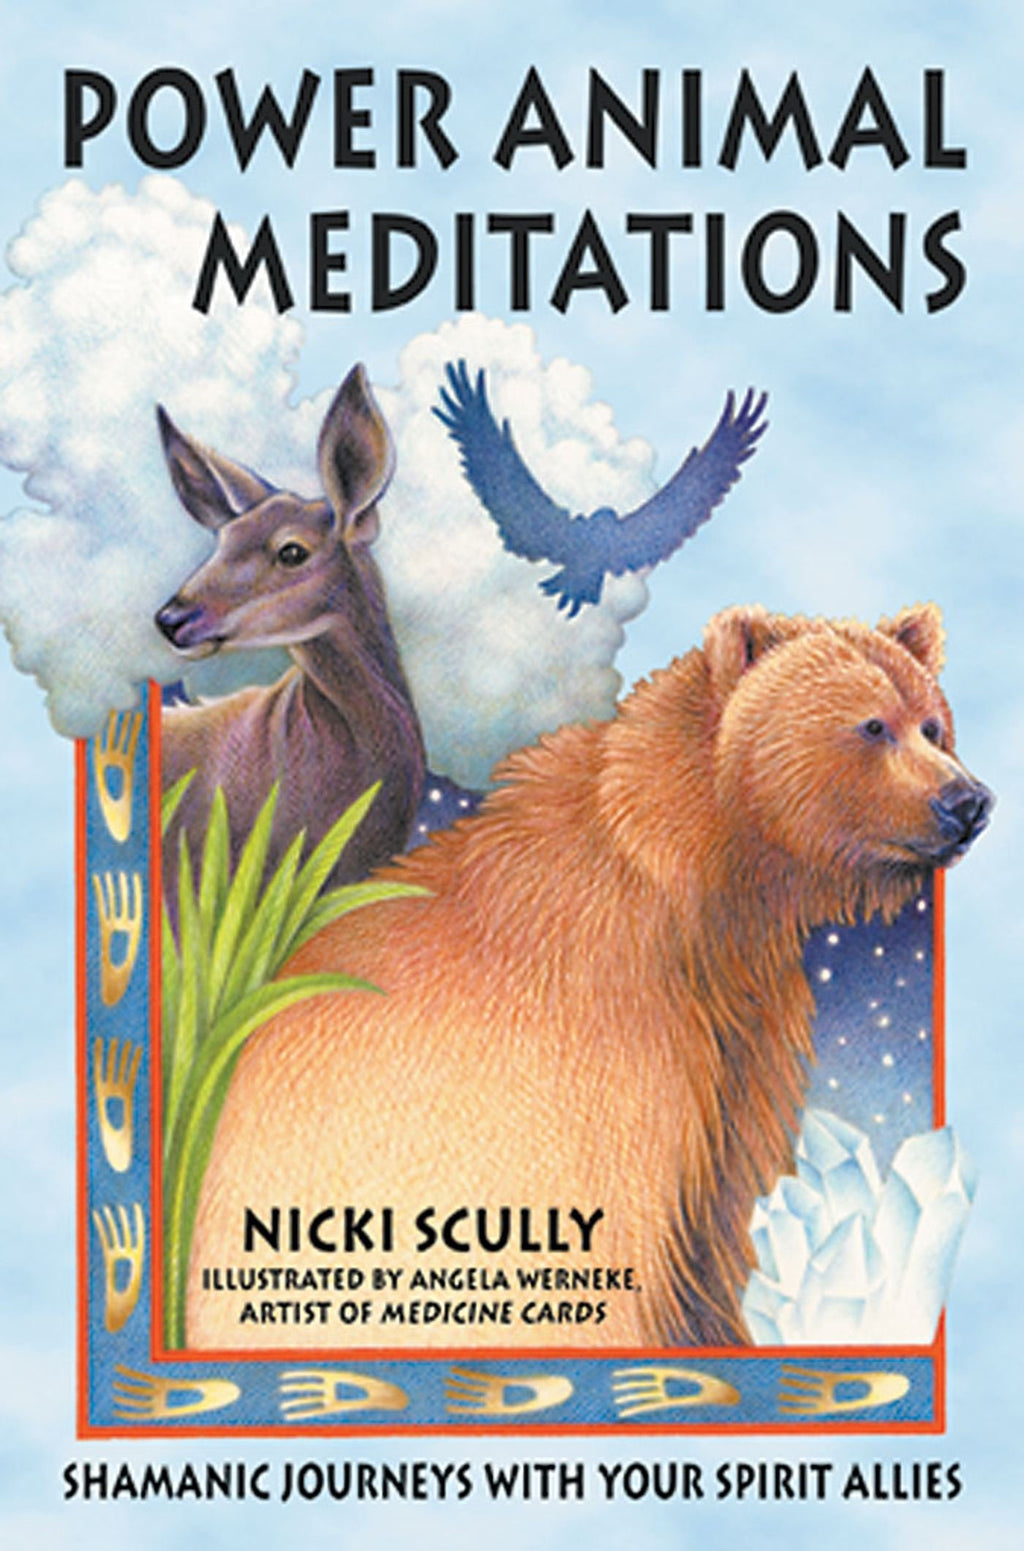 Power Animal Meditations by Nicki Scully